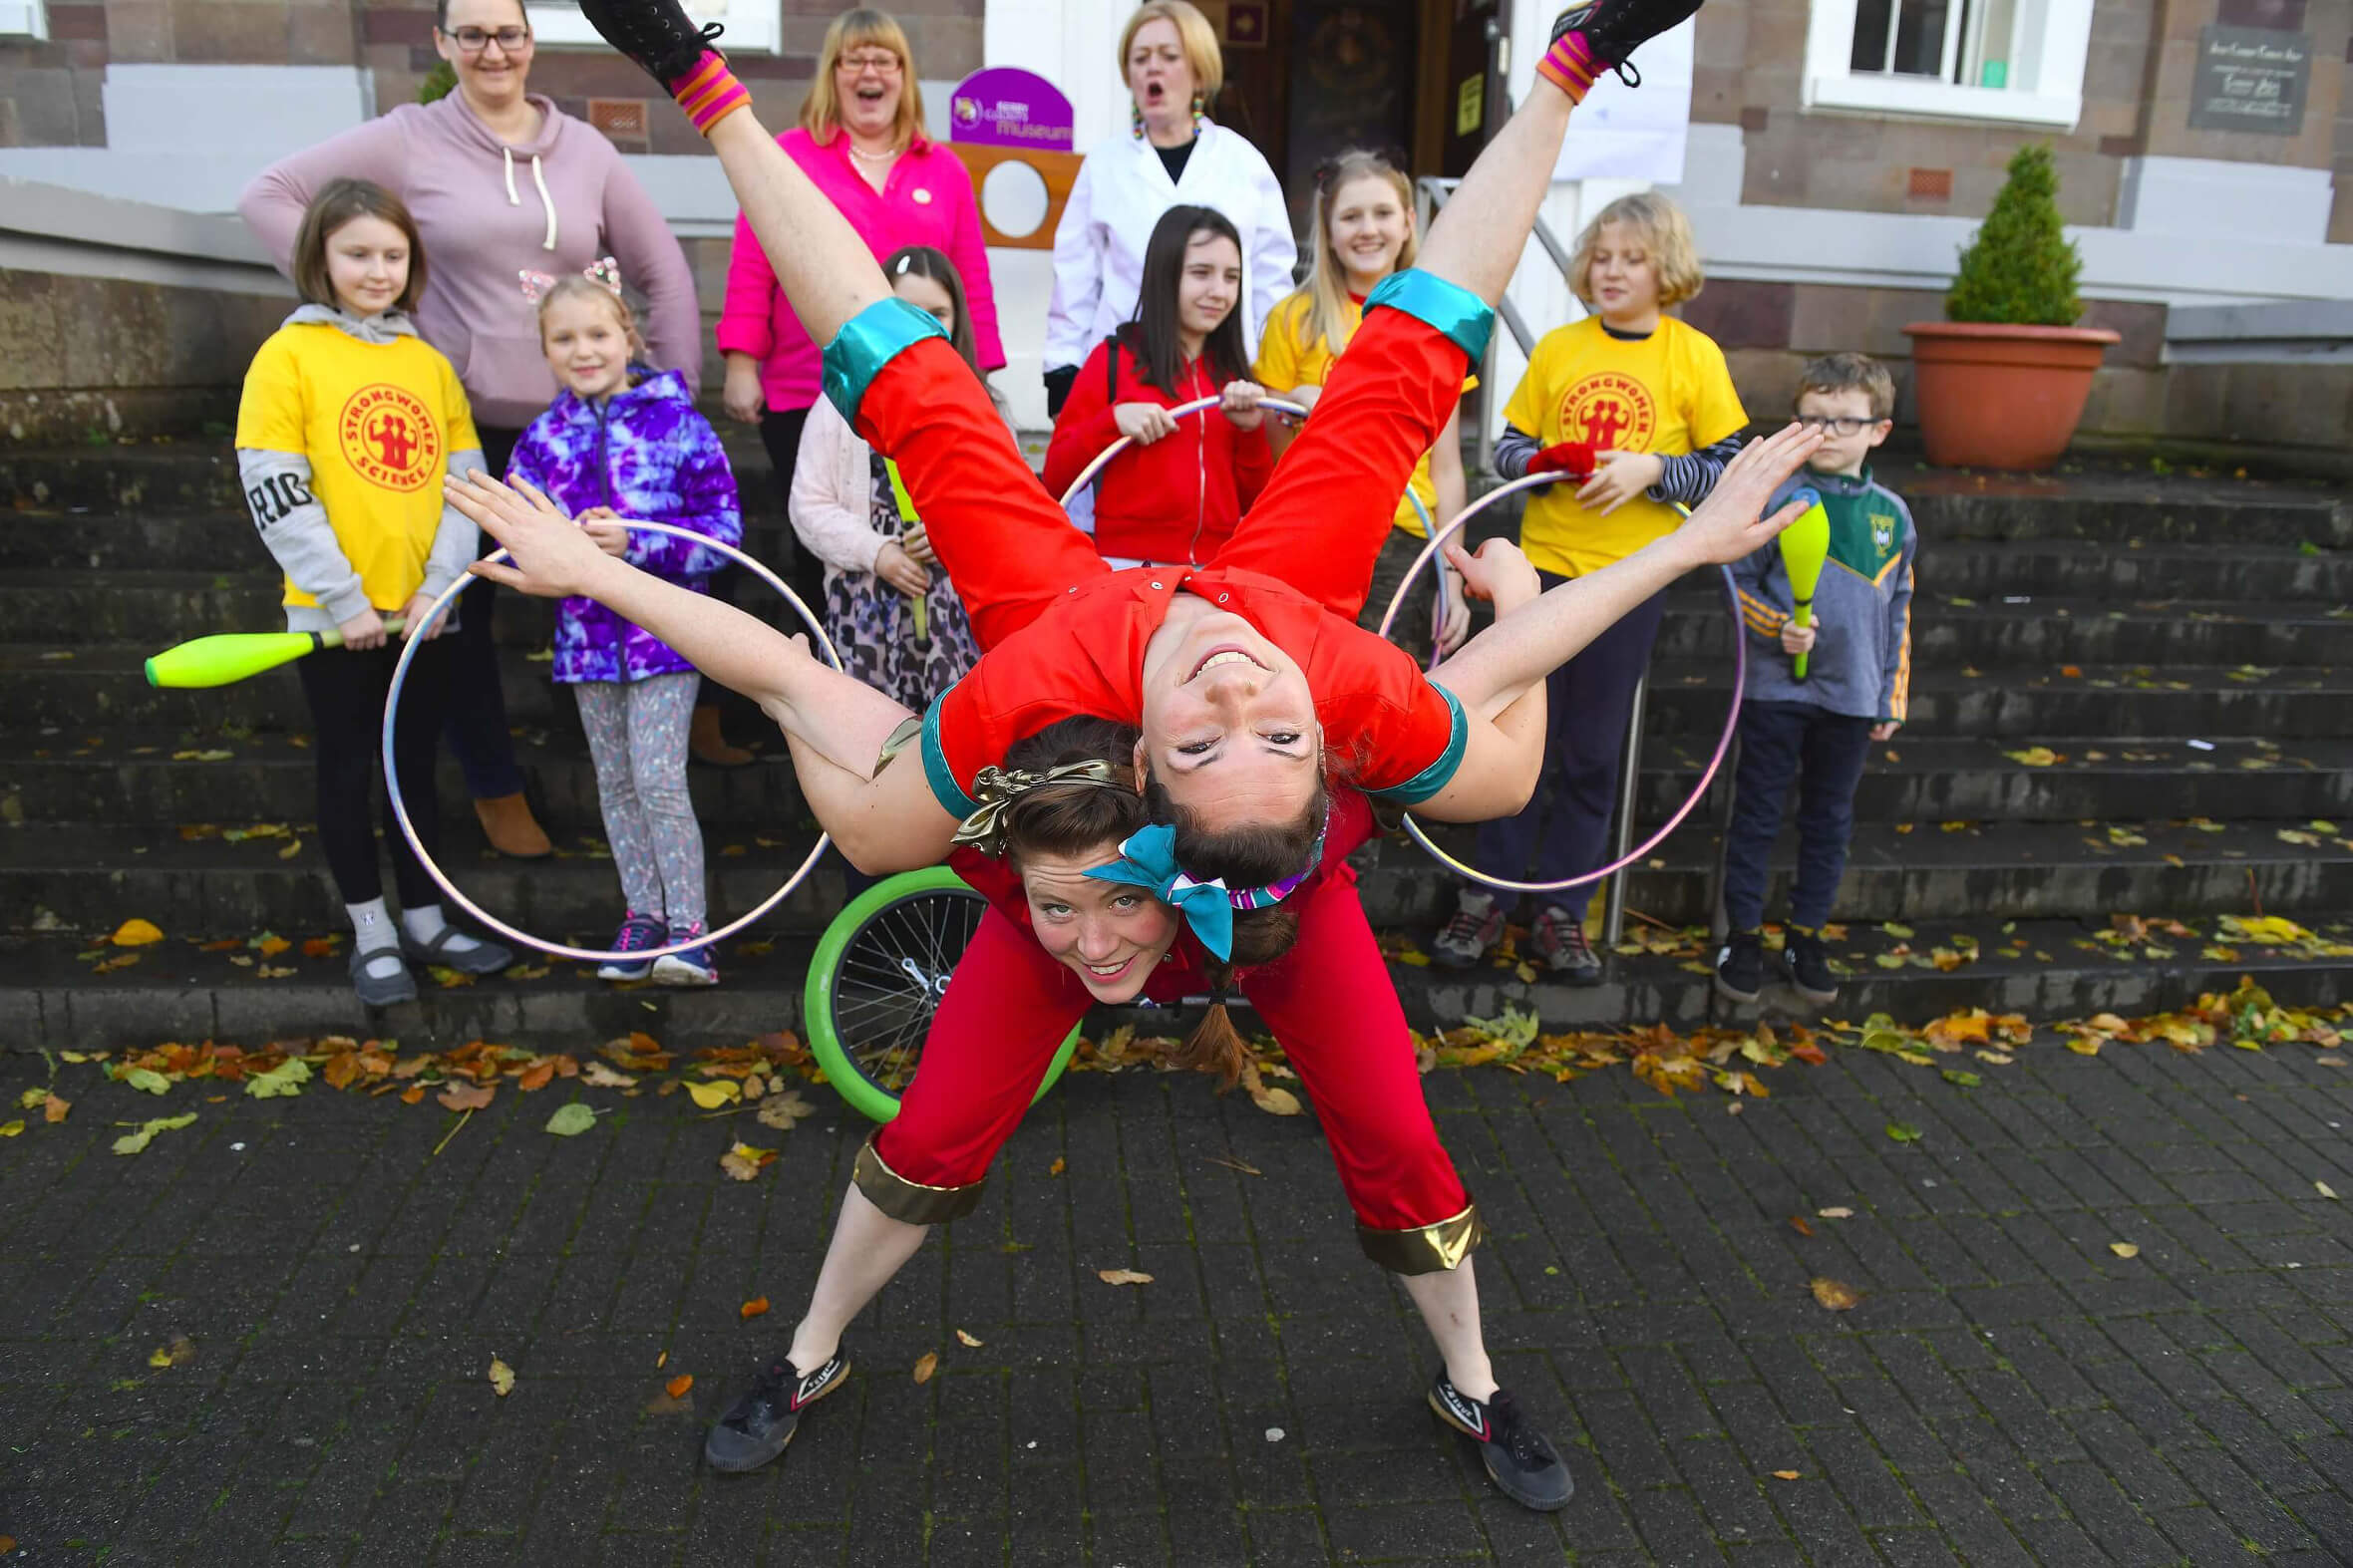 SWS Kerry County Museum, Nov 2018, Irish premiere as part of Circus250, national Science Week Tralee. Courtesy of Circus250